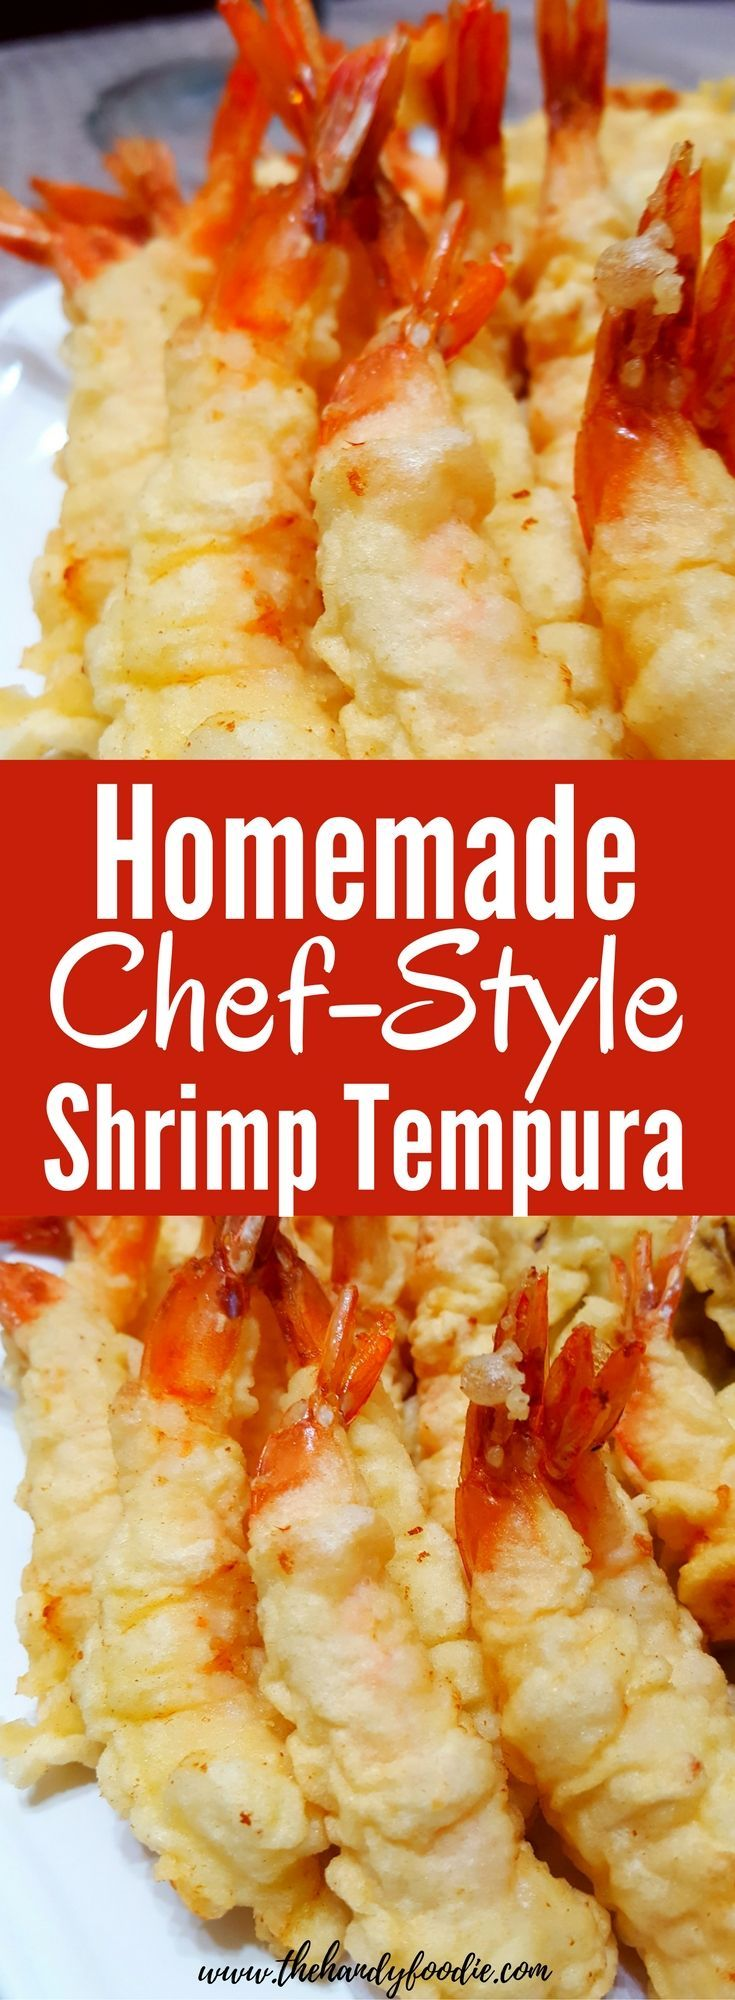 Homemade Shrimp Tempura l chef recipe l easy recipe l cheap meal l budget l healthy food l shrimp recipes l shrimp meals l fried appetizers l quick recipe